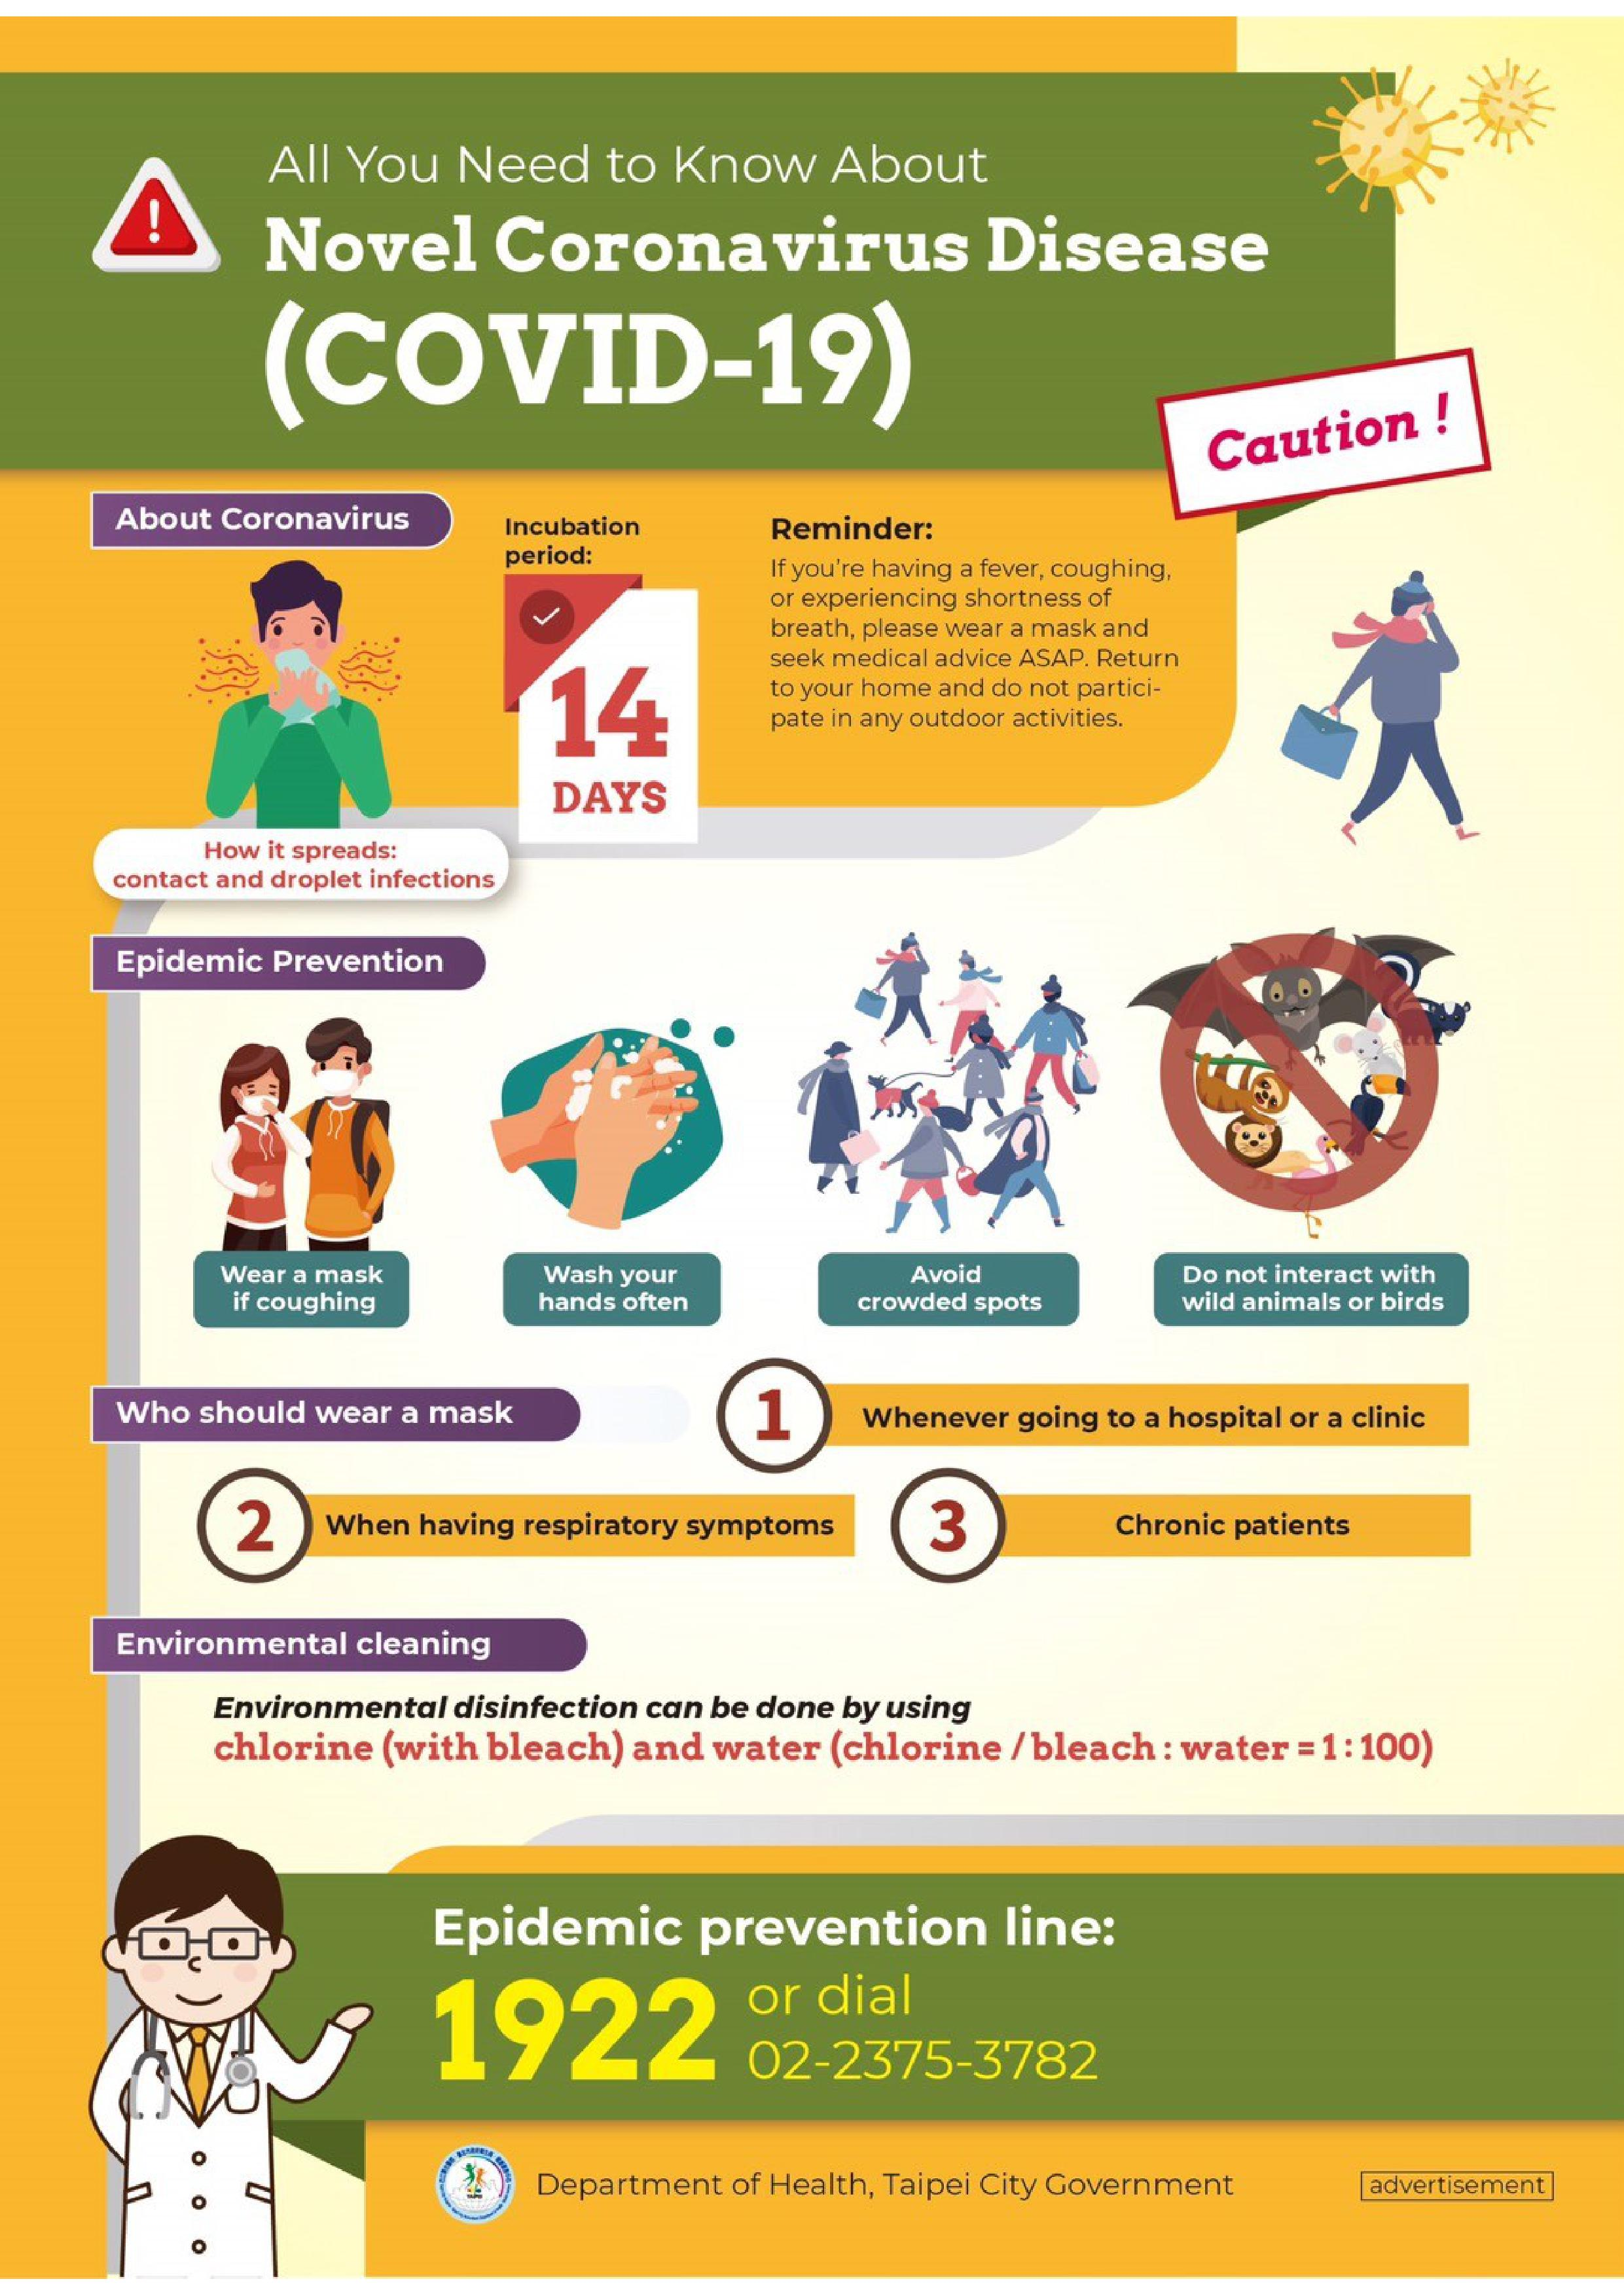 Understanding How to Prevent COVID-19 in One Picture(Coronavirus)